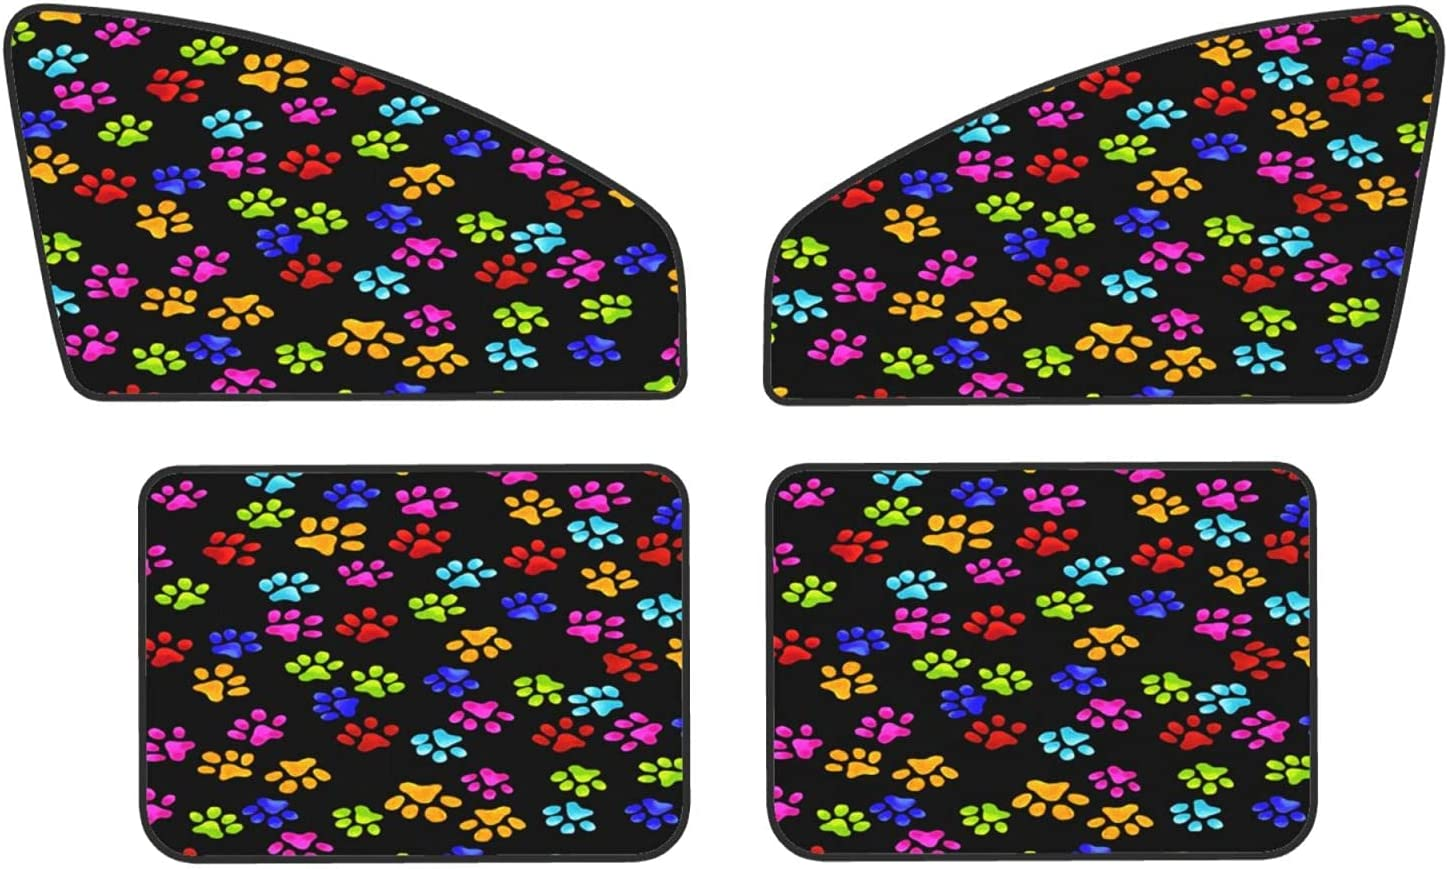 Colorful Dog Paw Gorgeous Prints Car Protect Covers Sunshades 2021 new Magnets Pri